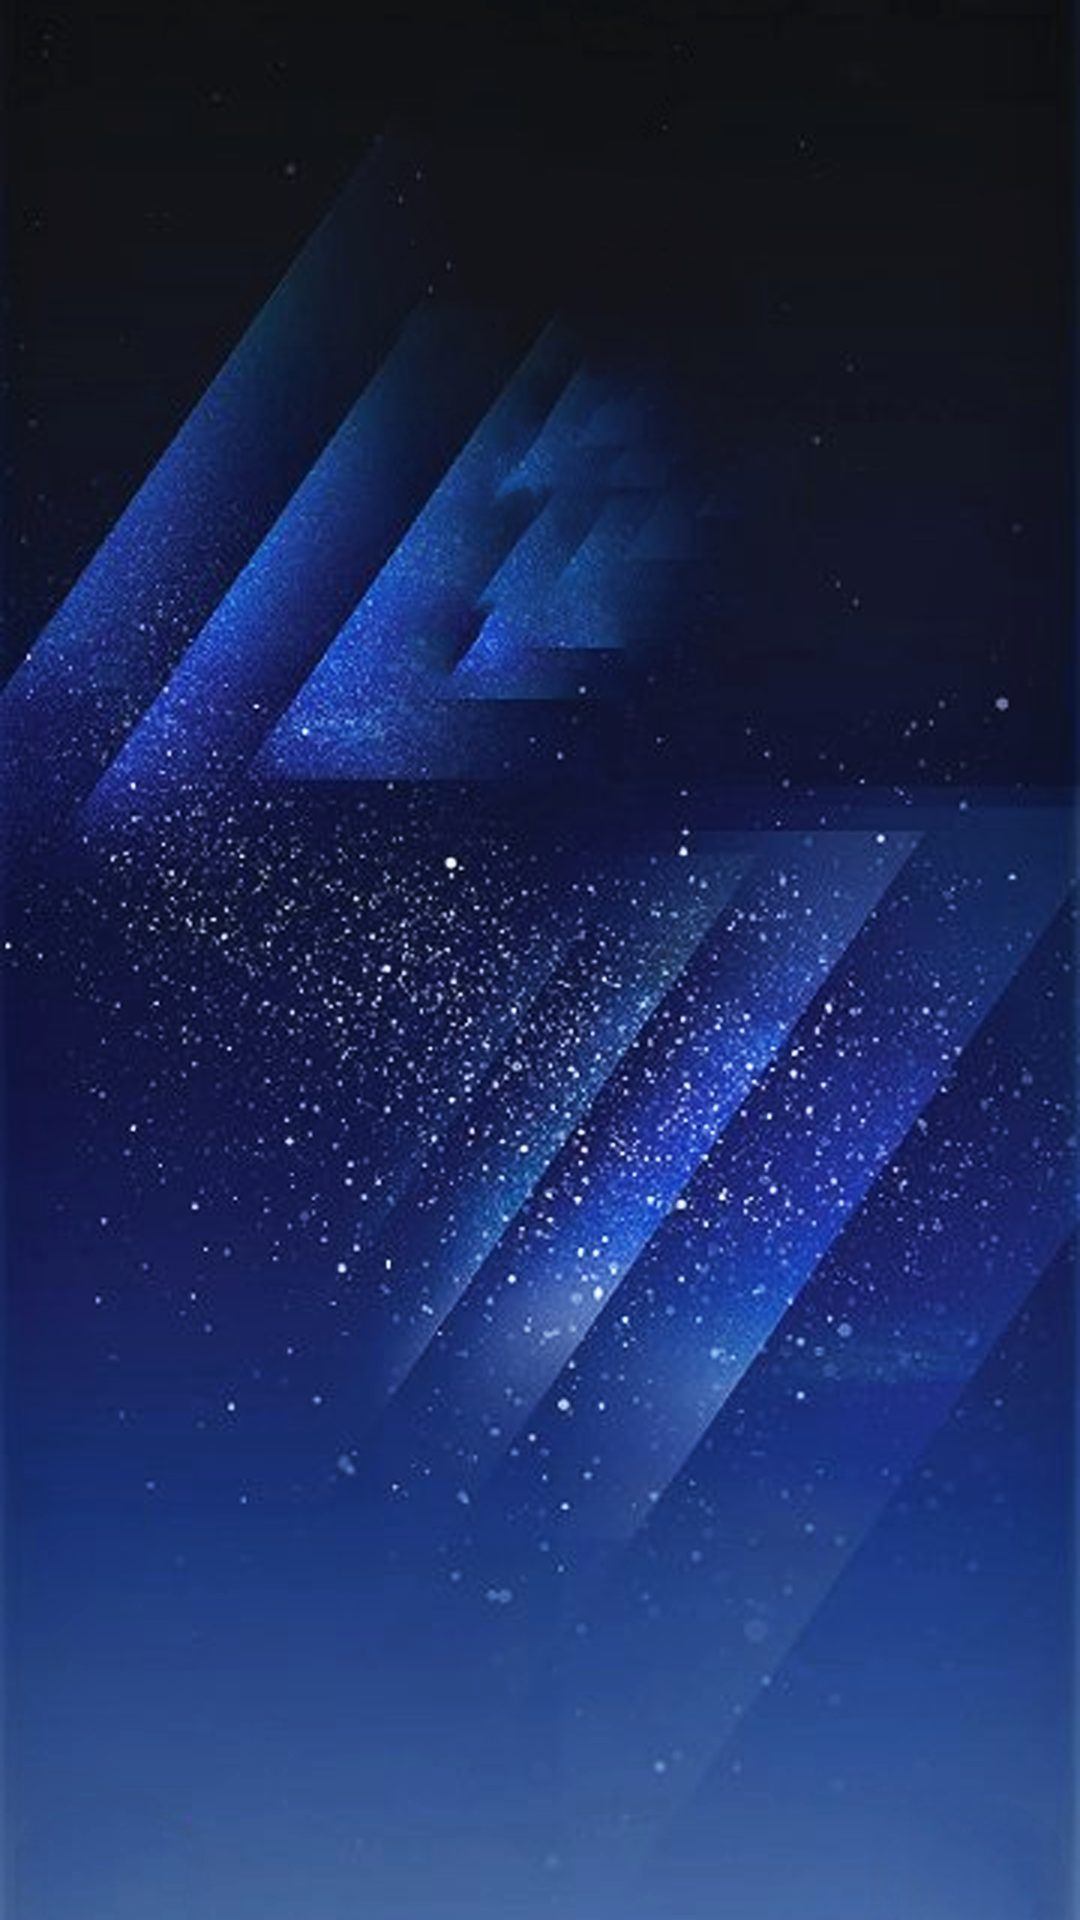 Download Samsung Galaxy S8 Stock Wallpapers Leaked HD Wallpapers Download Free Images Wallpaper [1000image.com]